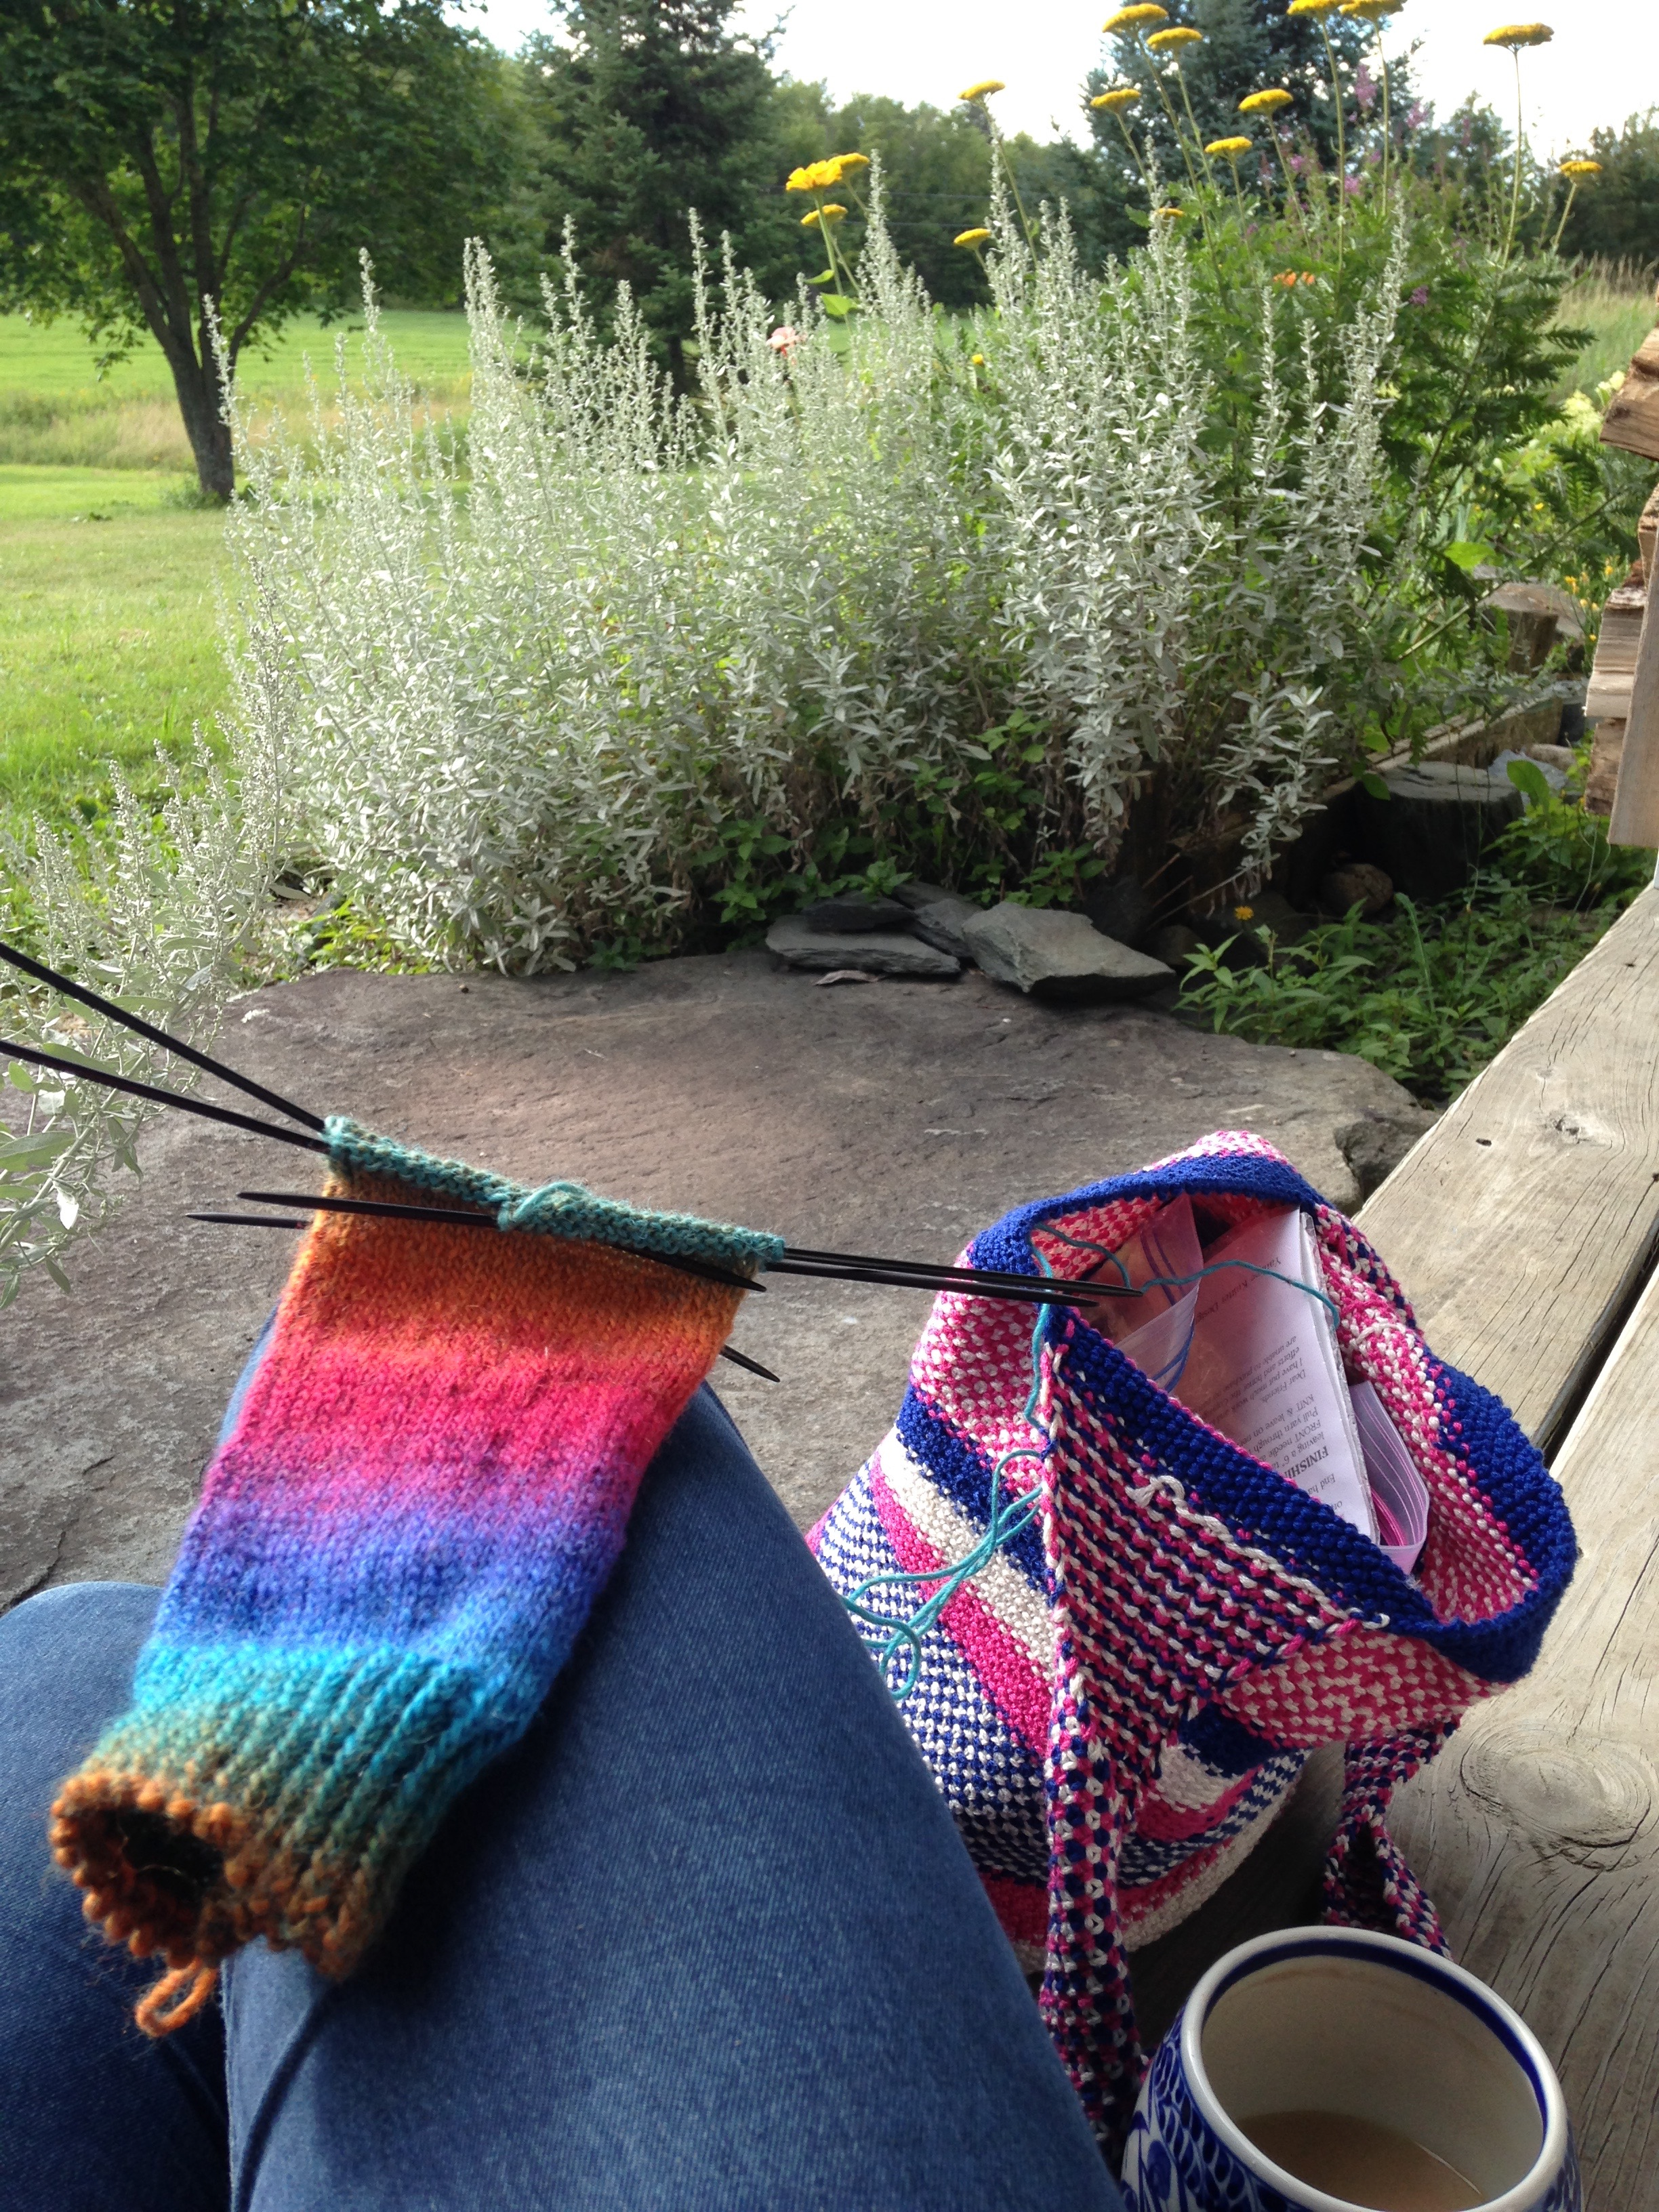 Knitting on the porch, with tea